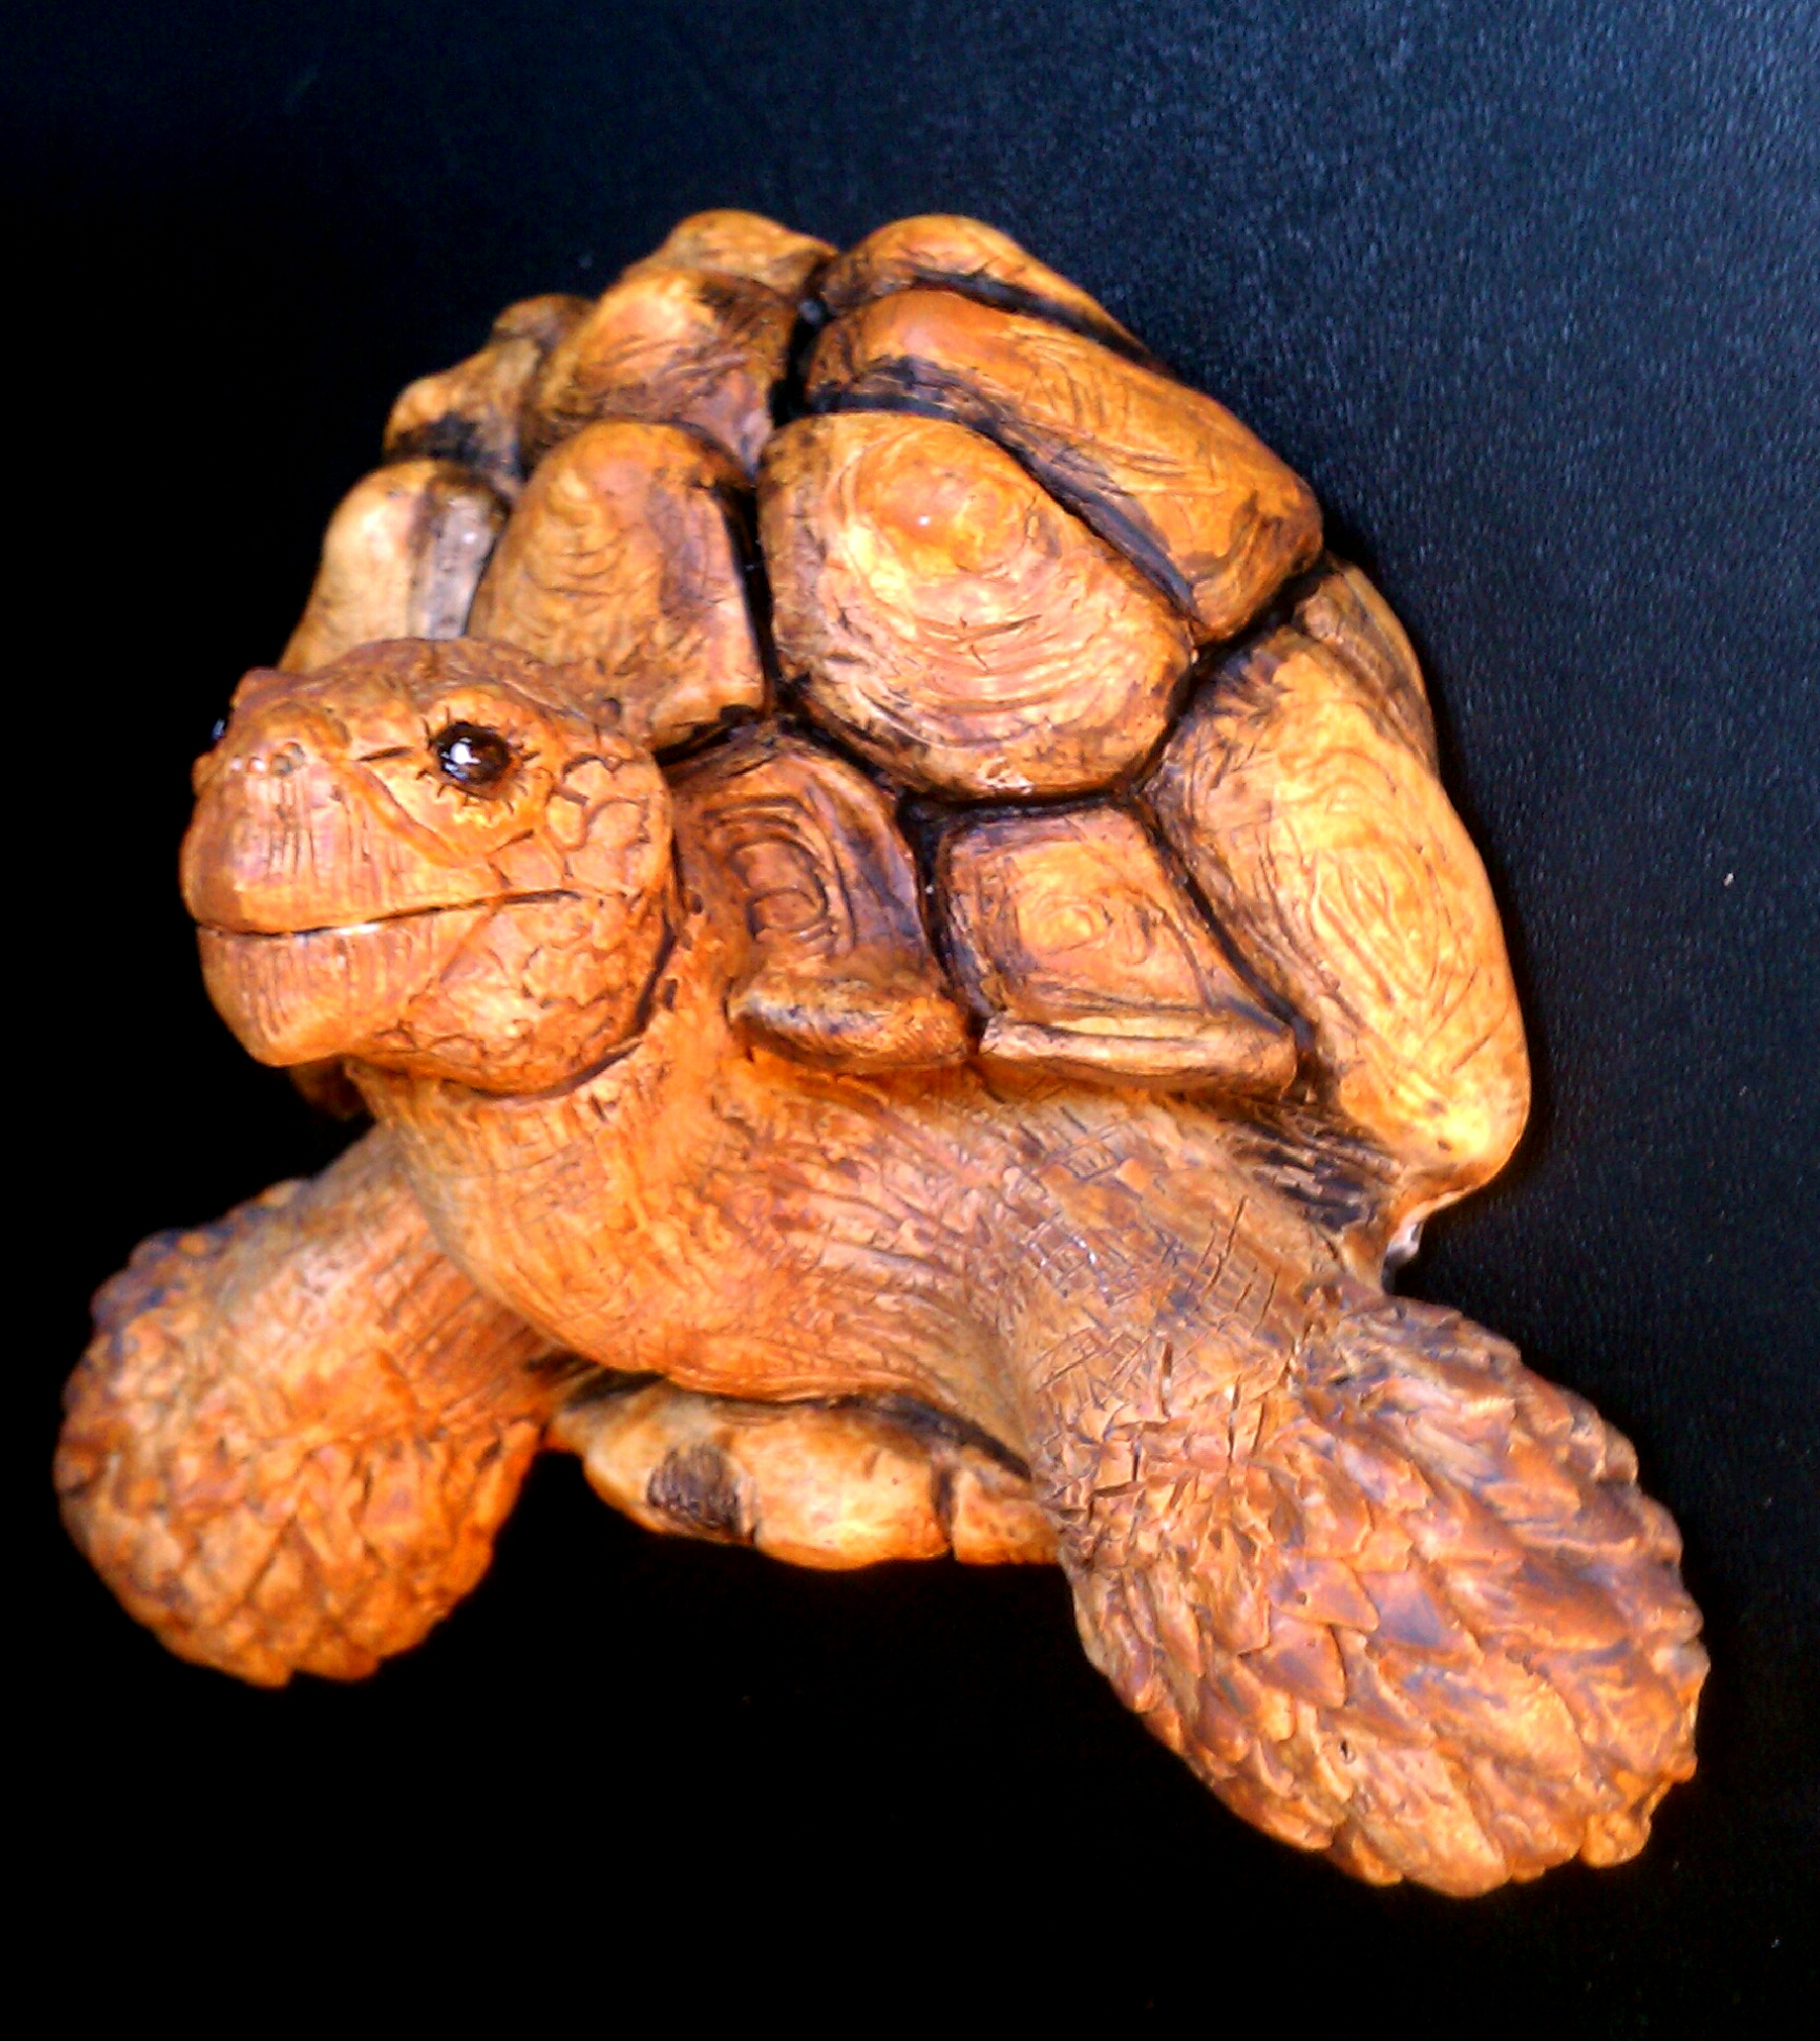 While this magnet is a Sulcata Tortoise, I have dozens of species of animal, including a wide array of reptiles and birds.